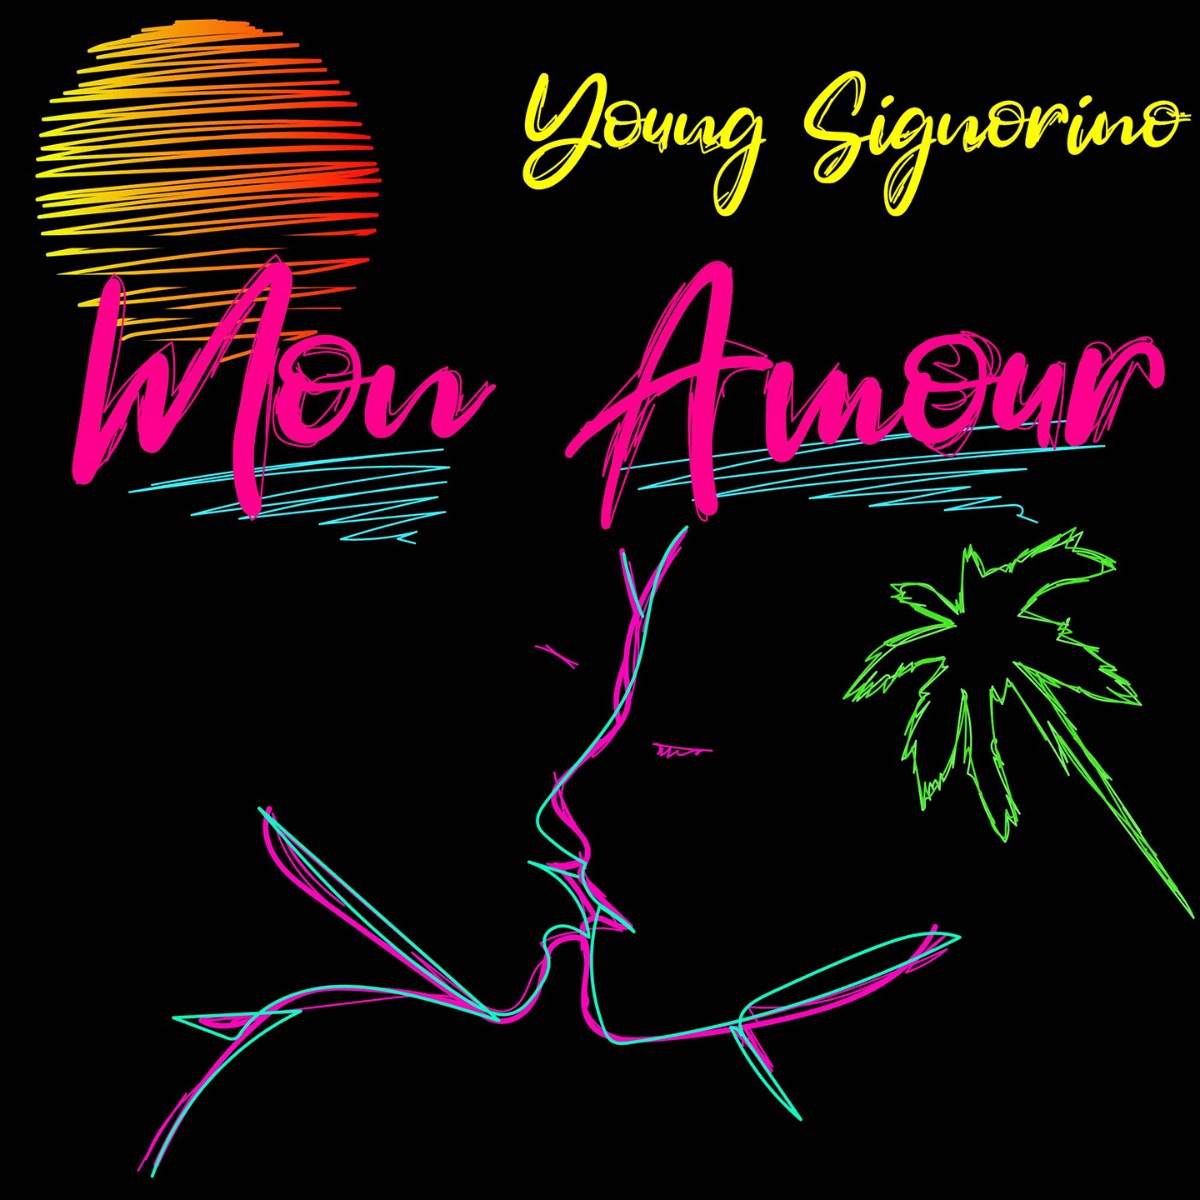 young signorino cover